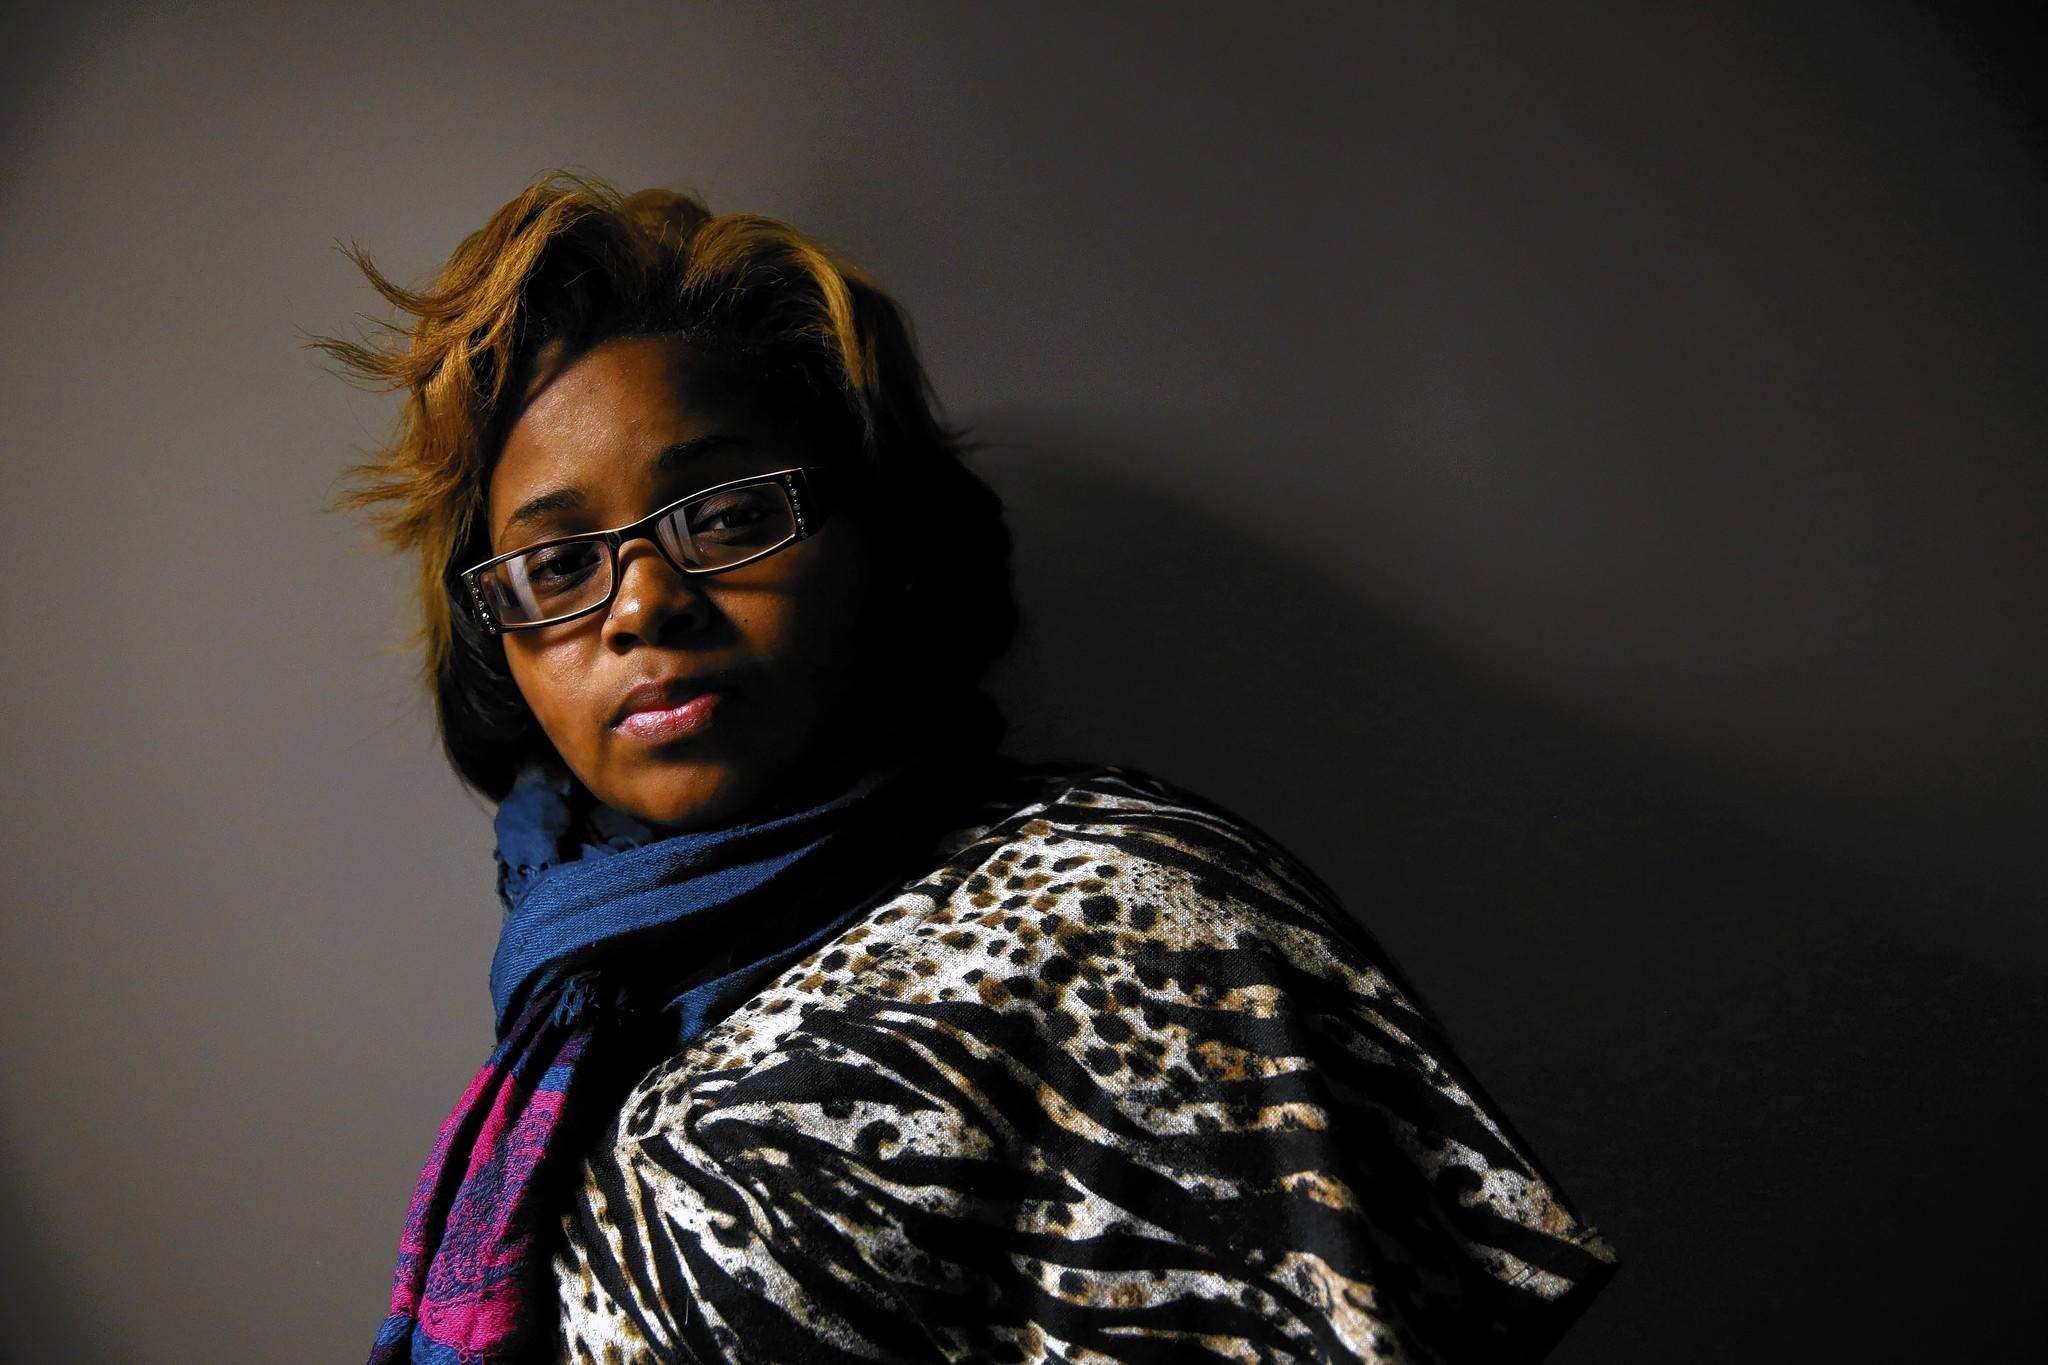 Kwamesha Sharp, 19, is suing the village of Harvey over a police arrest and her miscarriage.